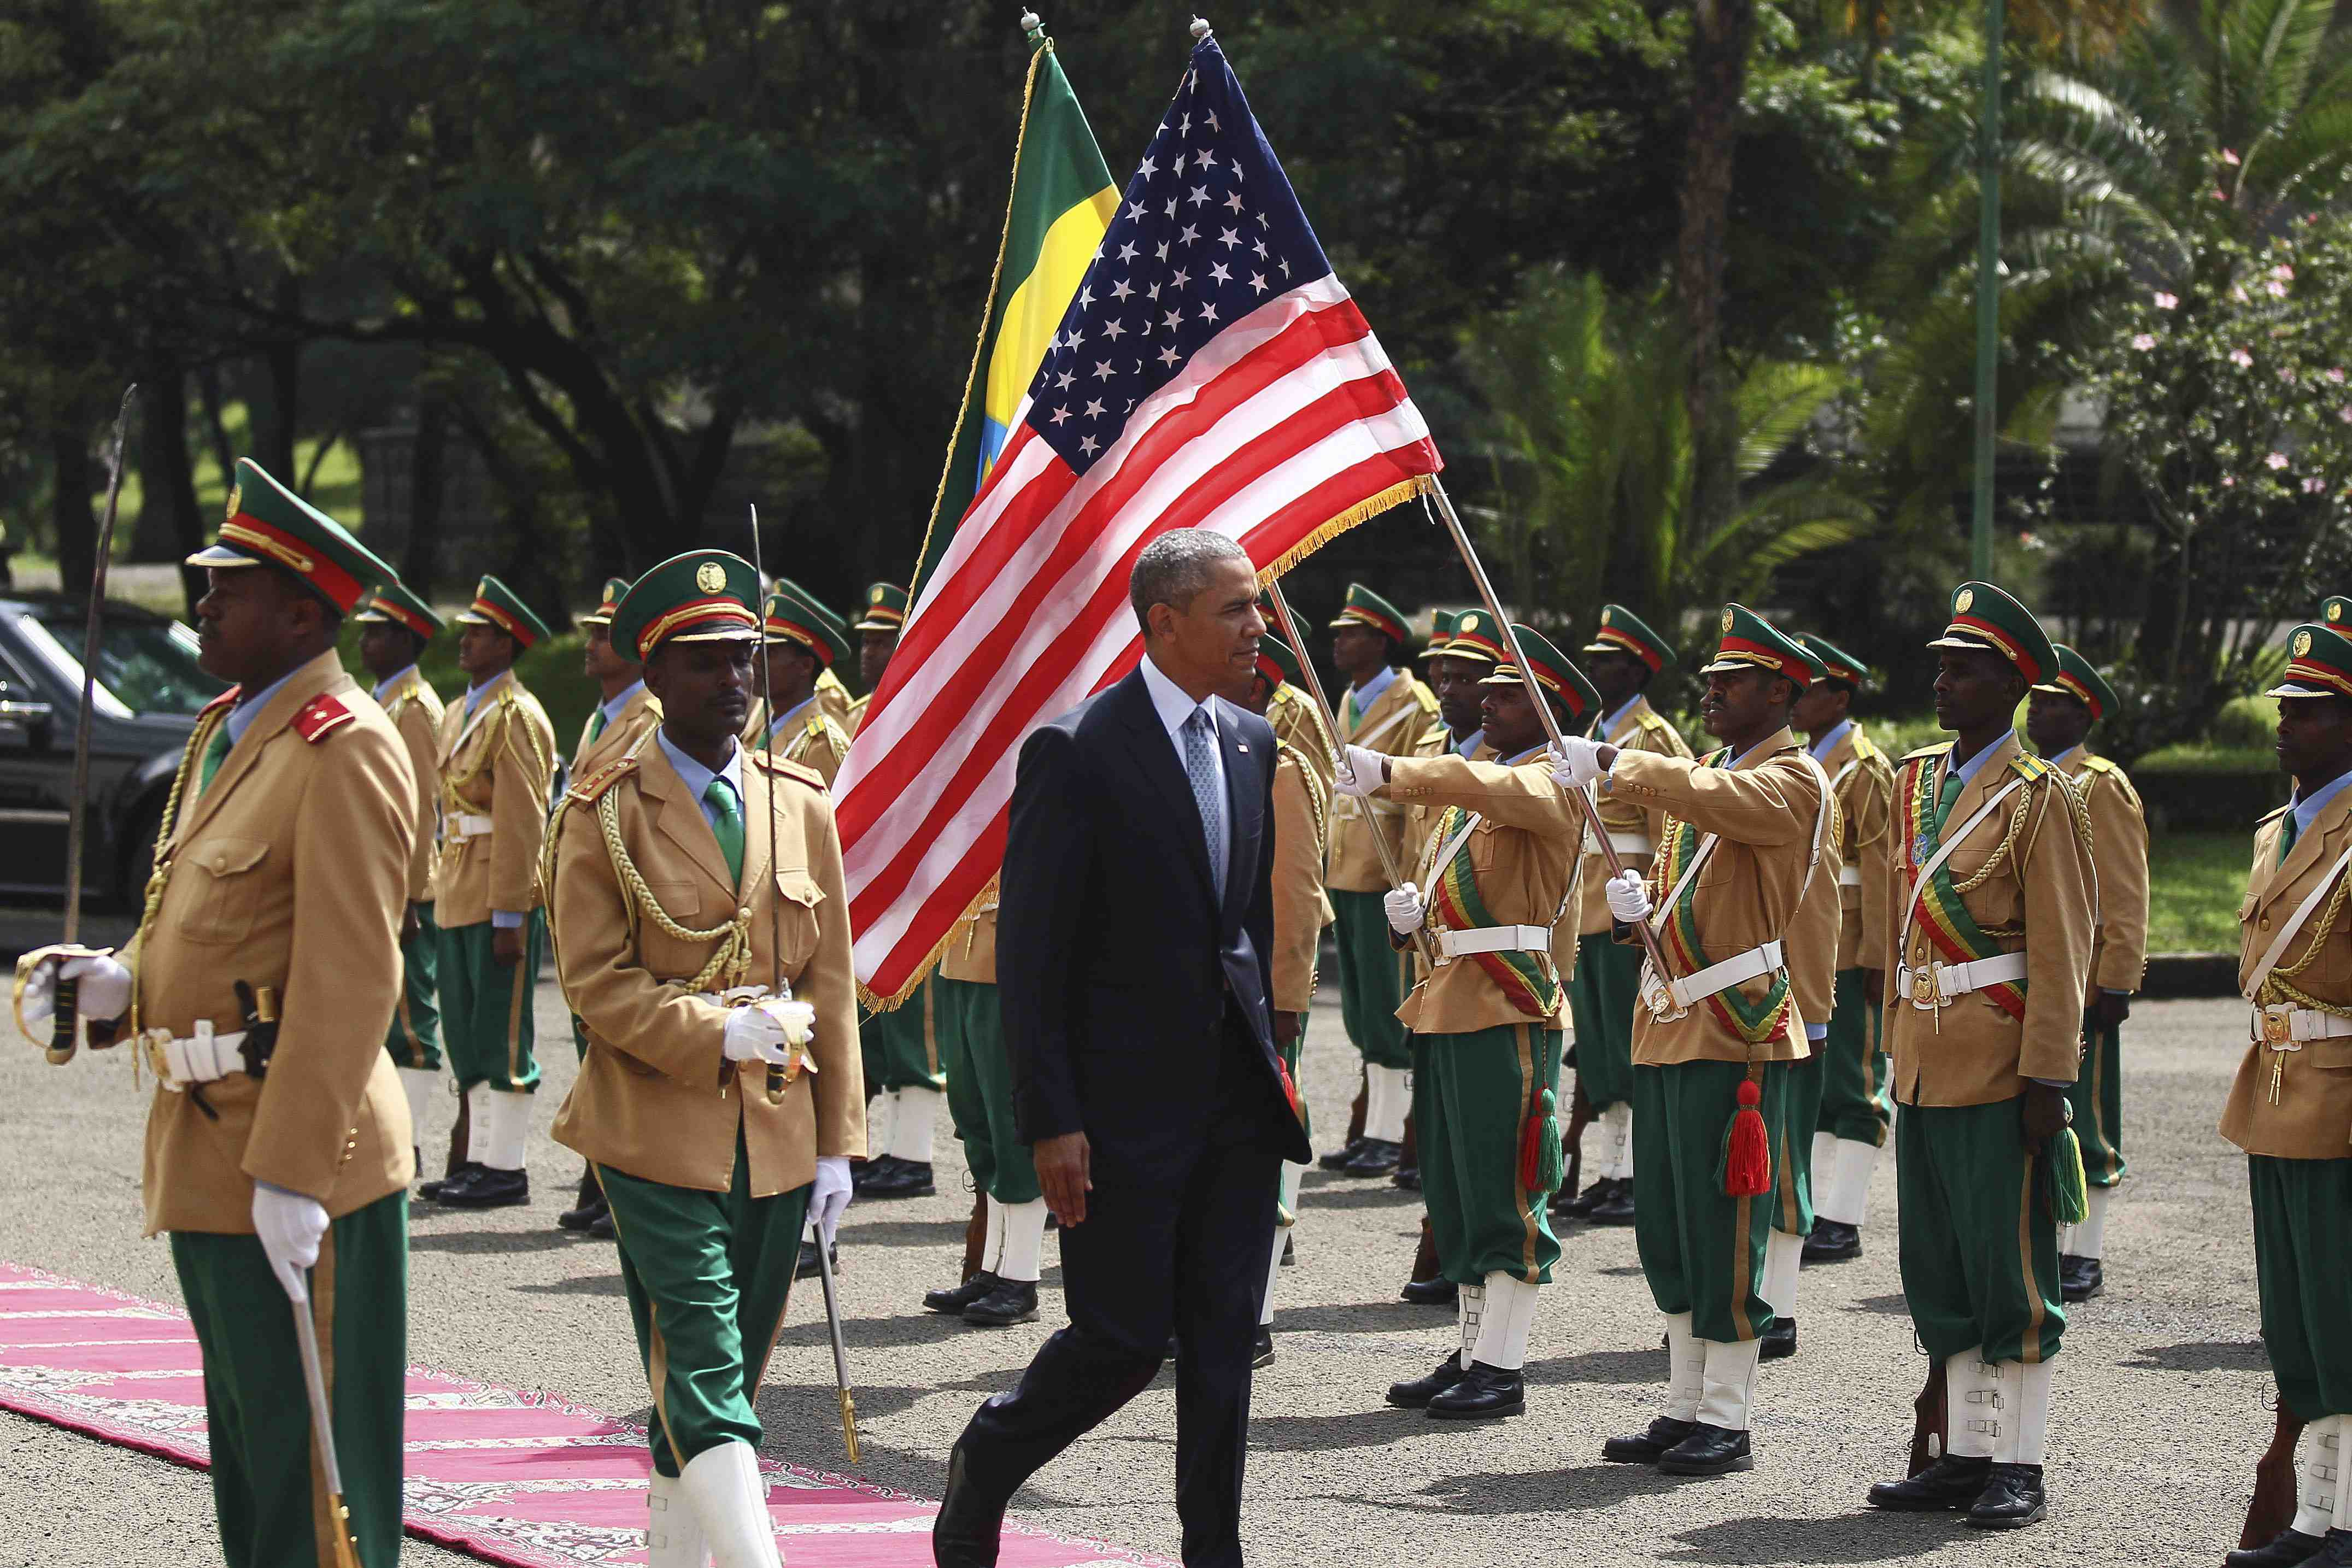 U.S. President Barack Obama (C) reviews a marsh band during a welcome ceremony at the National Palace in Addis Ababa, Ethiopia July 27, 2015